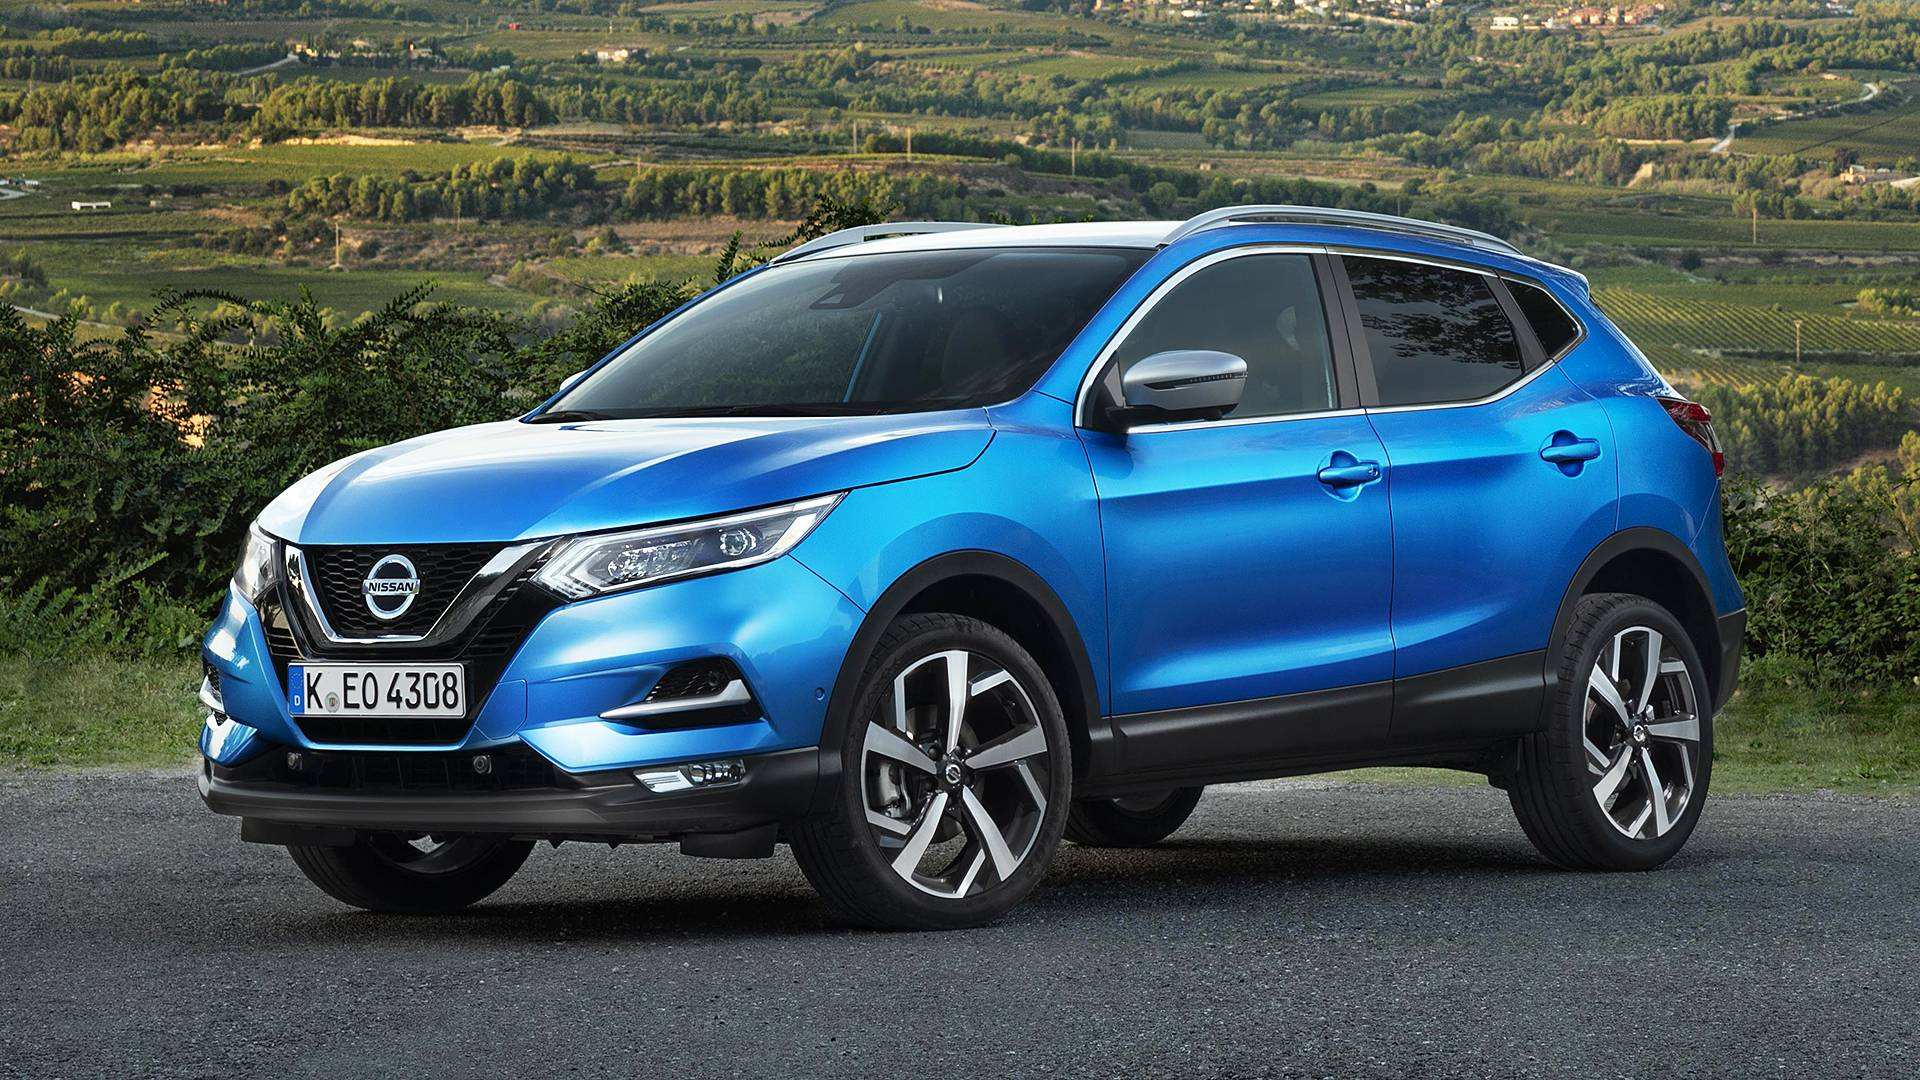 64 The Best 2019 Nissan Qashqai Concept And Review